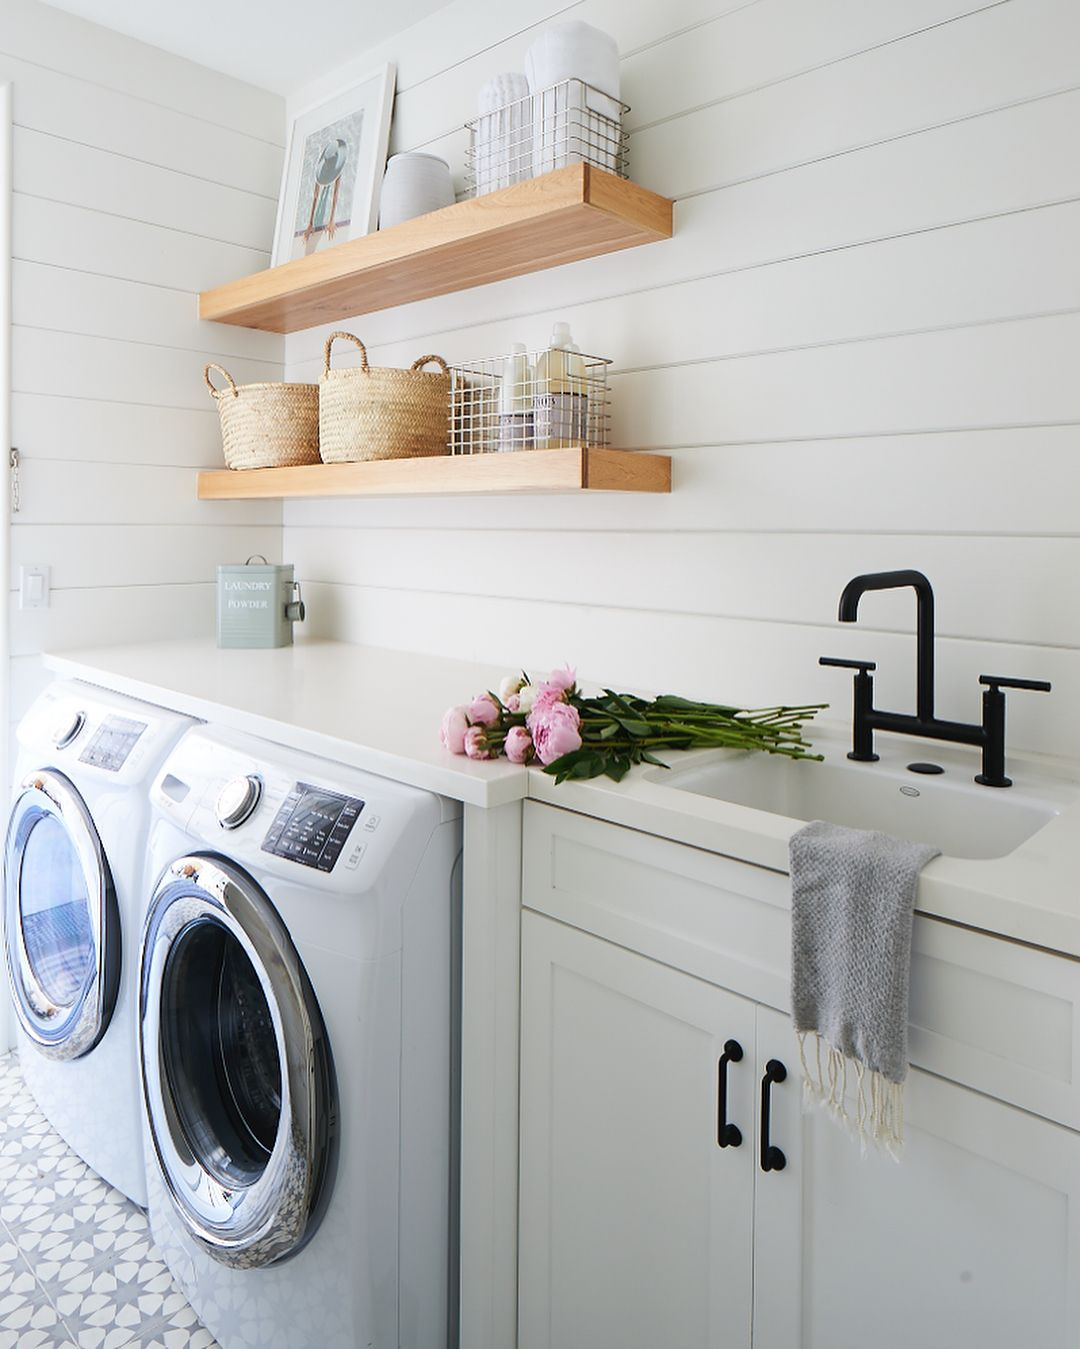 South Harlow Interiors On Instagram A Laundry Room That Actually